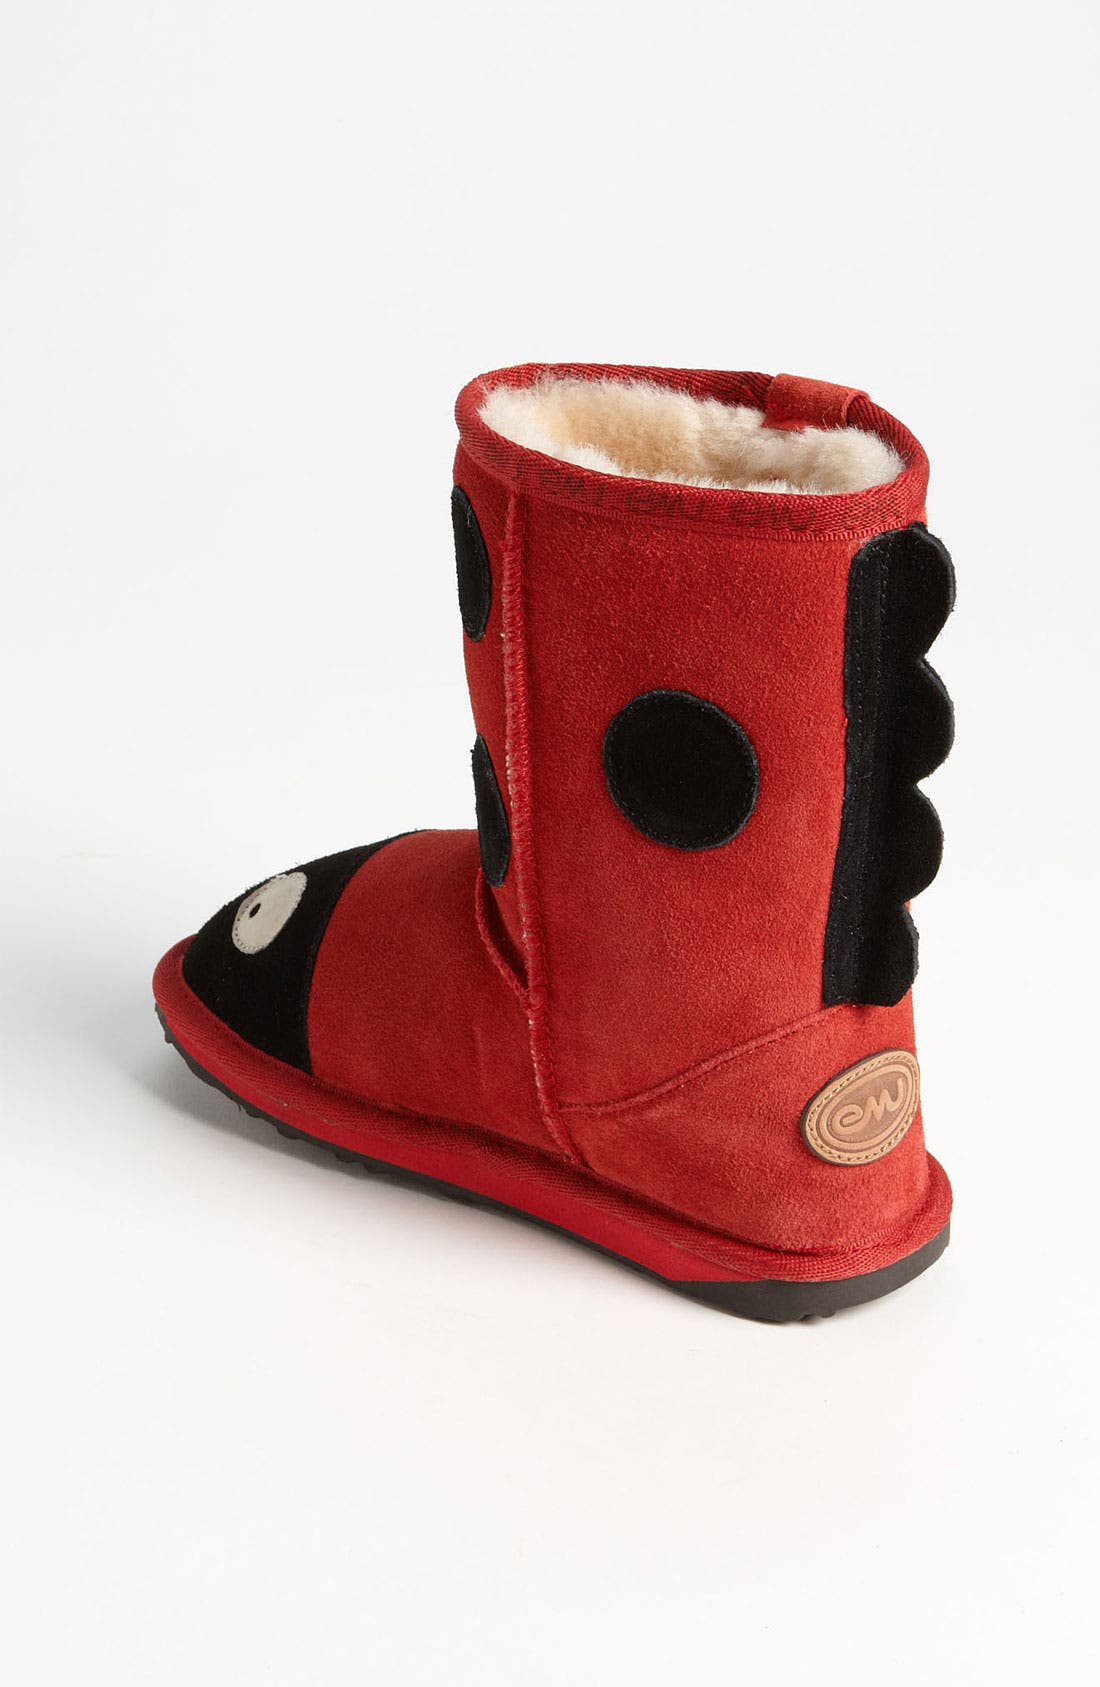 Little Creatures - Ladybug Boot,                             Alternate thumbnail 11, color,                             RED